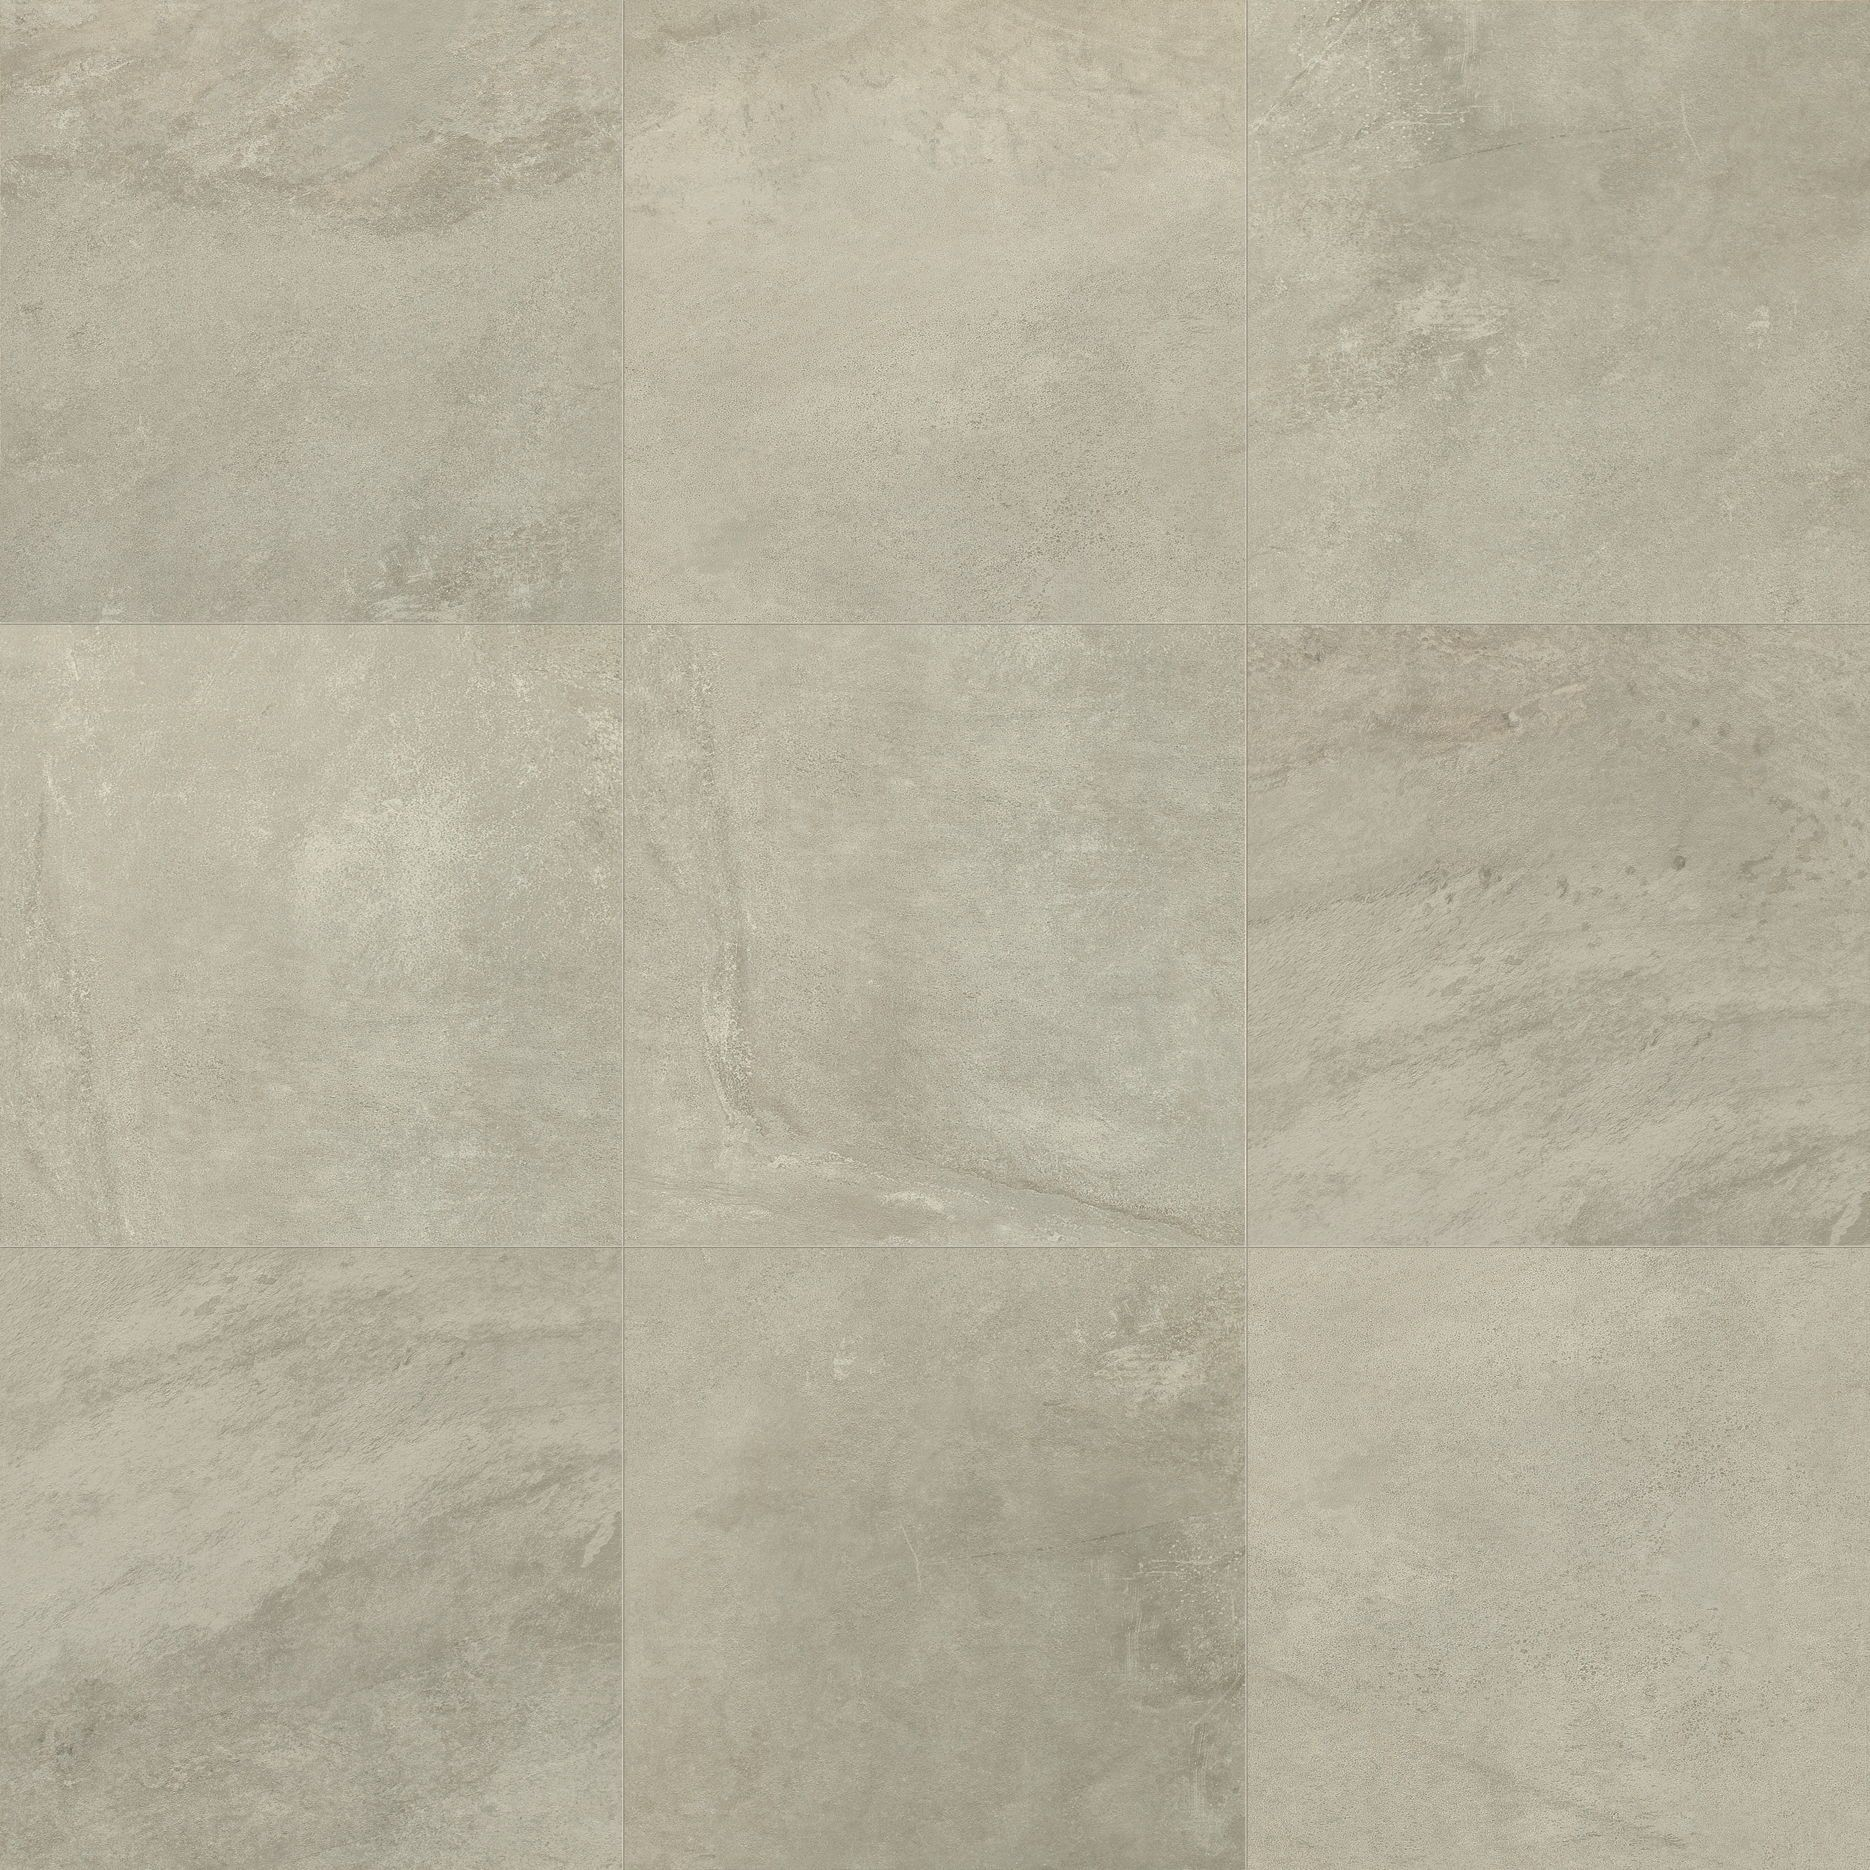 From italy with fervor styletech floor gres new collection tile flooring dailygadgetfo Images